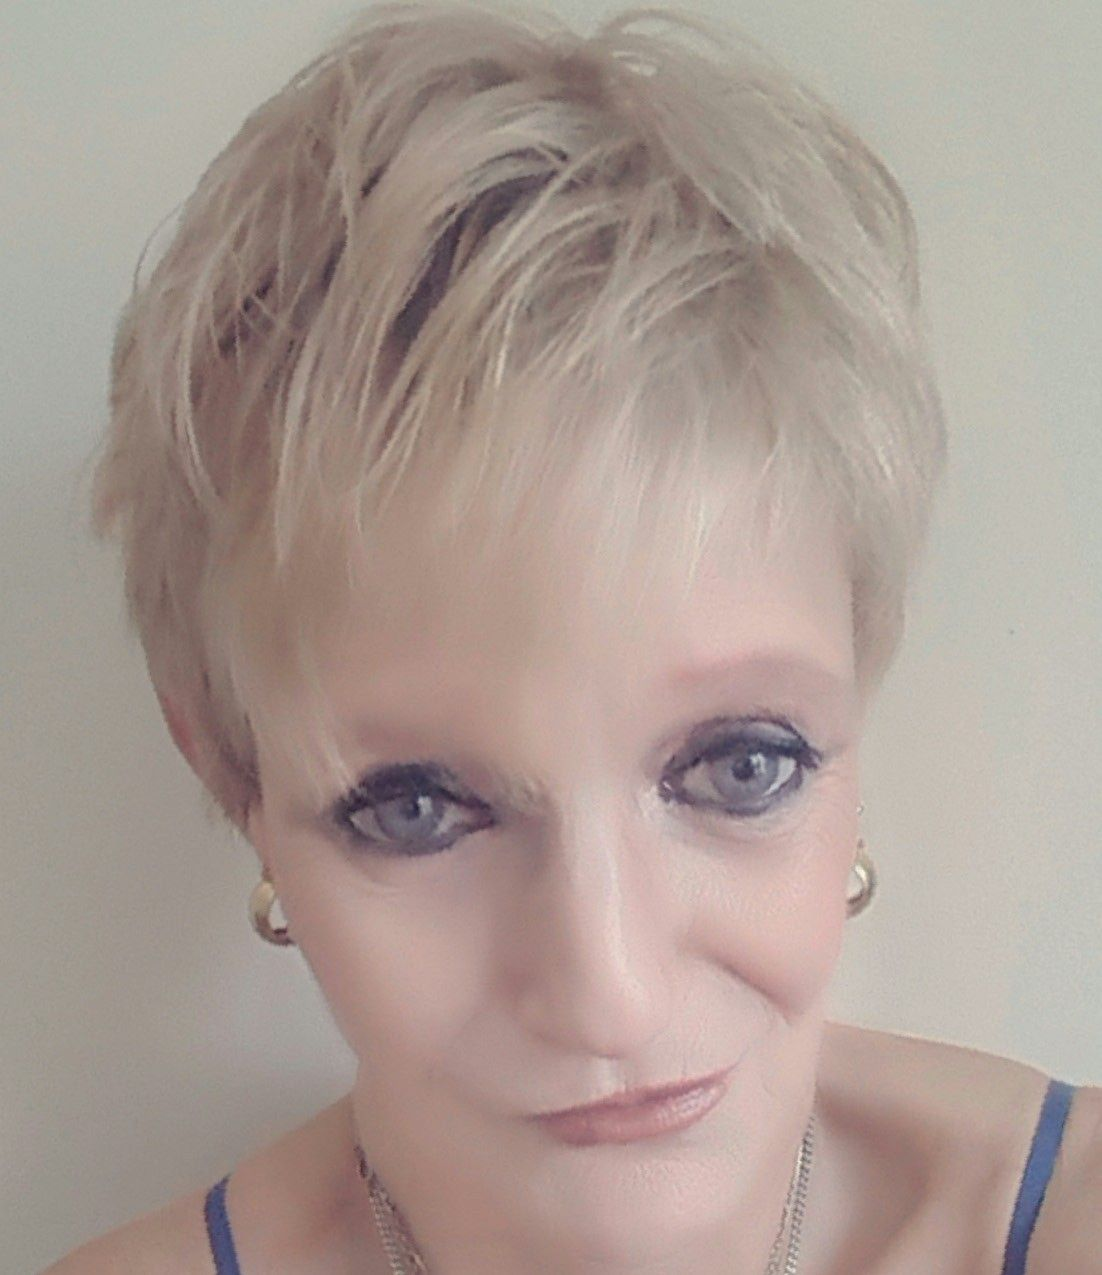 How To Tell If A Pixie Cut Will Suit You Pin On Make Up Hair And Nails Rock